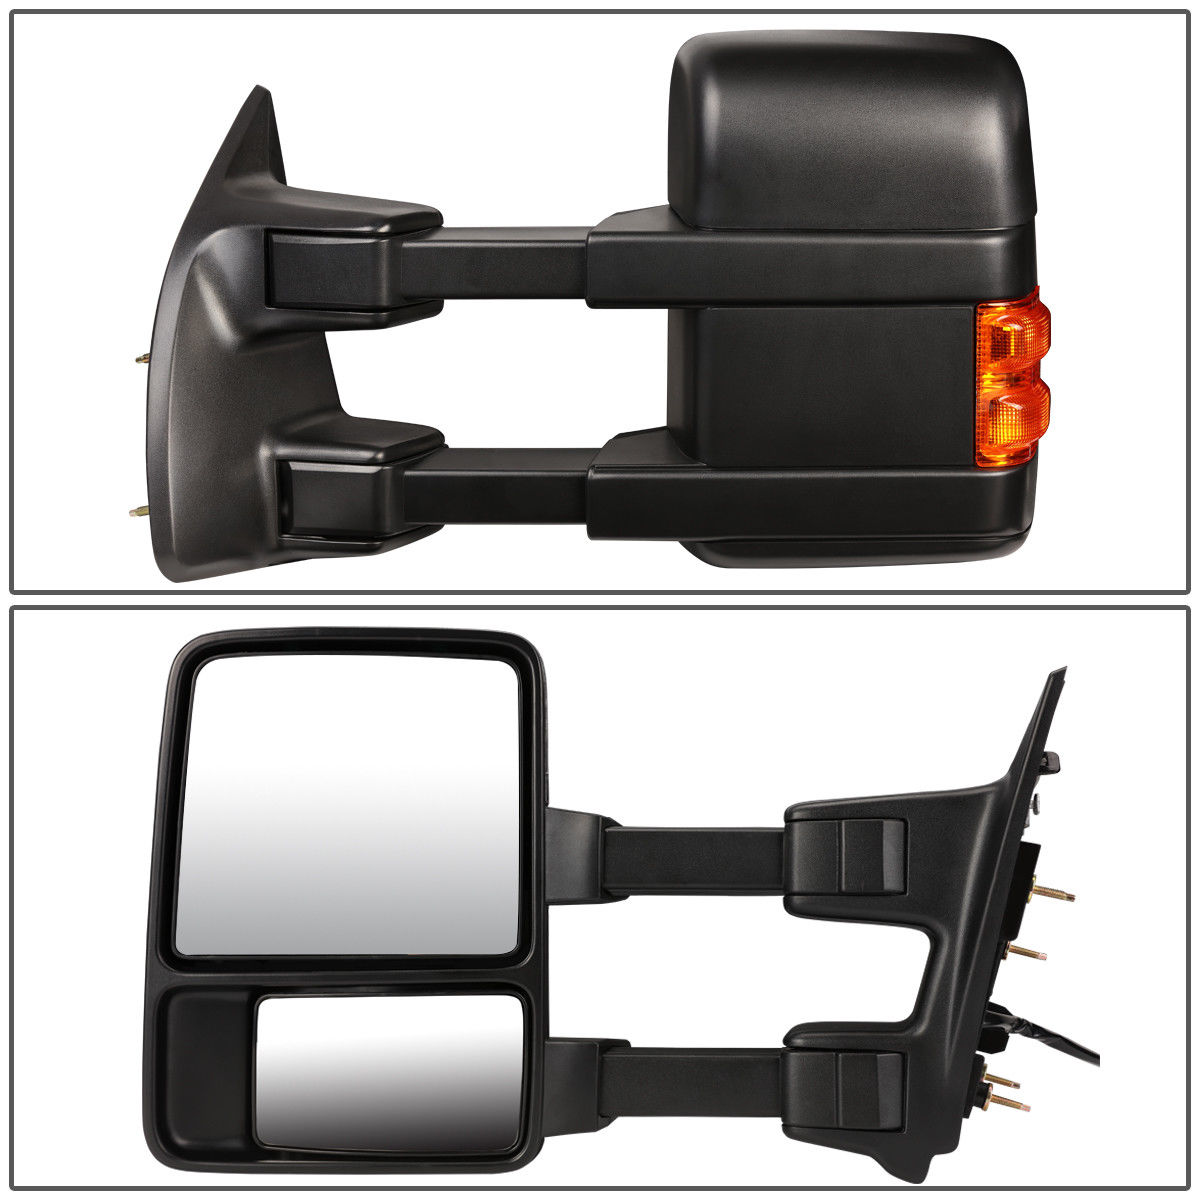 MANUAL+AMBER LED SIGNAL SIDE TOW TOWING MIRROR RIGHT FOR 08-16 FORD SUPER DUTY